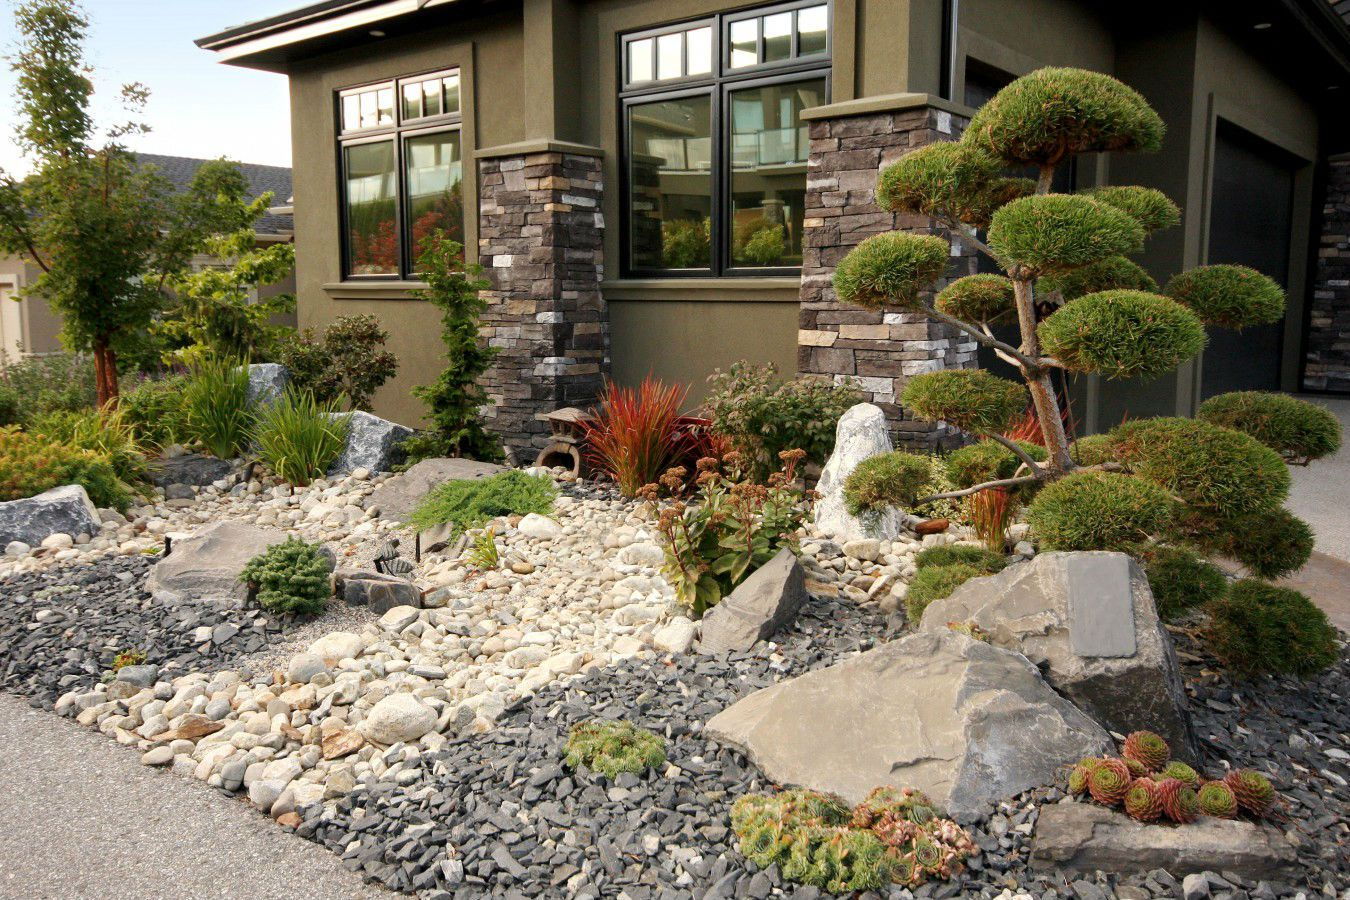 Some Essential Elements Anyone Should Not Forget In Dealing With The Backyard Landscape Design